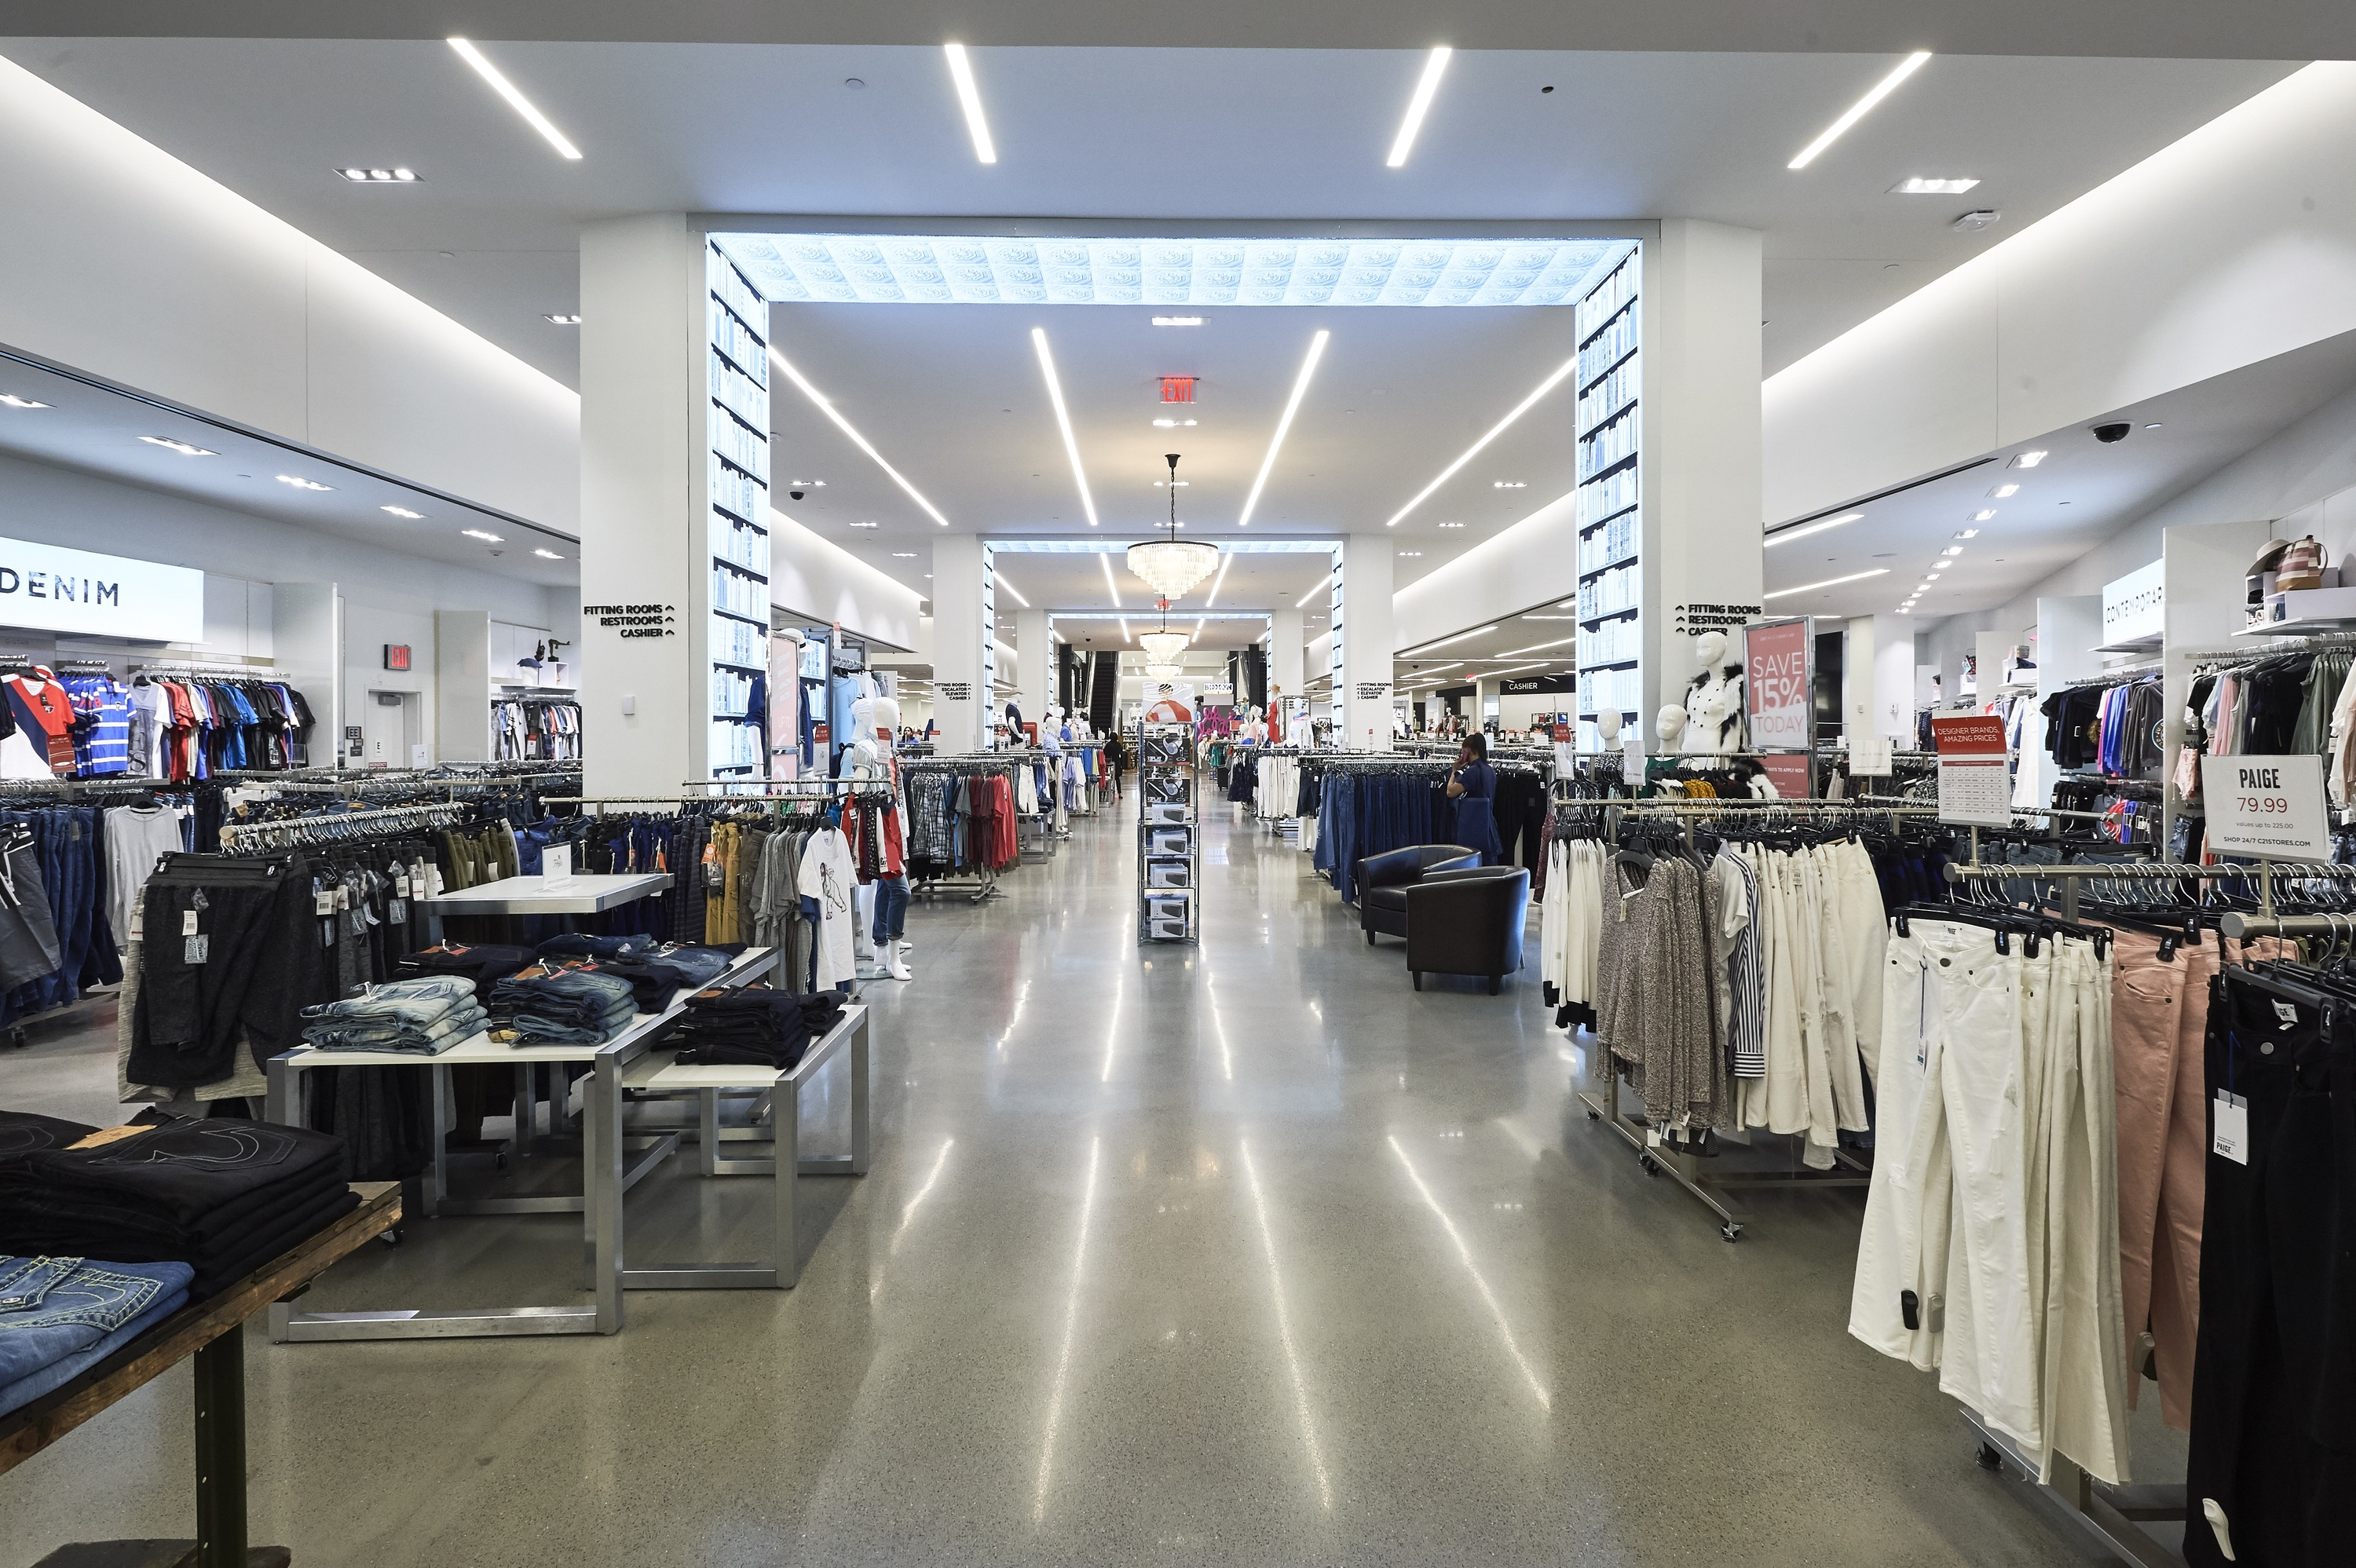 Best Department Stores in NYC to Shop for Clothing and More